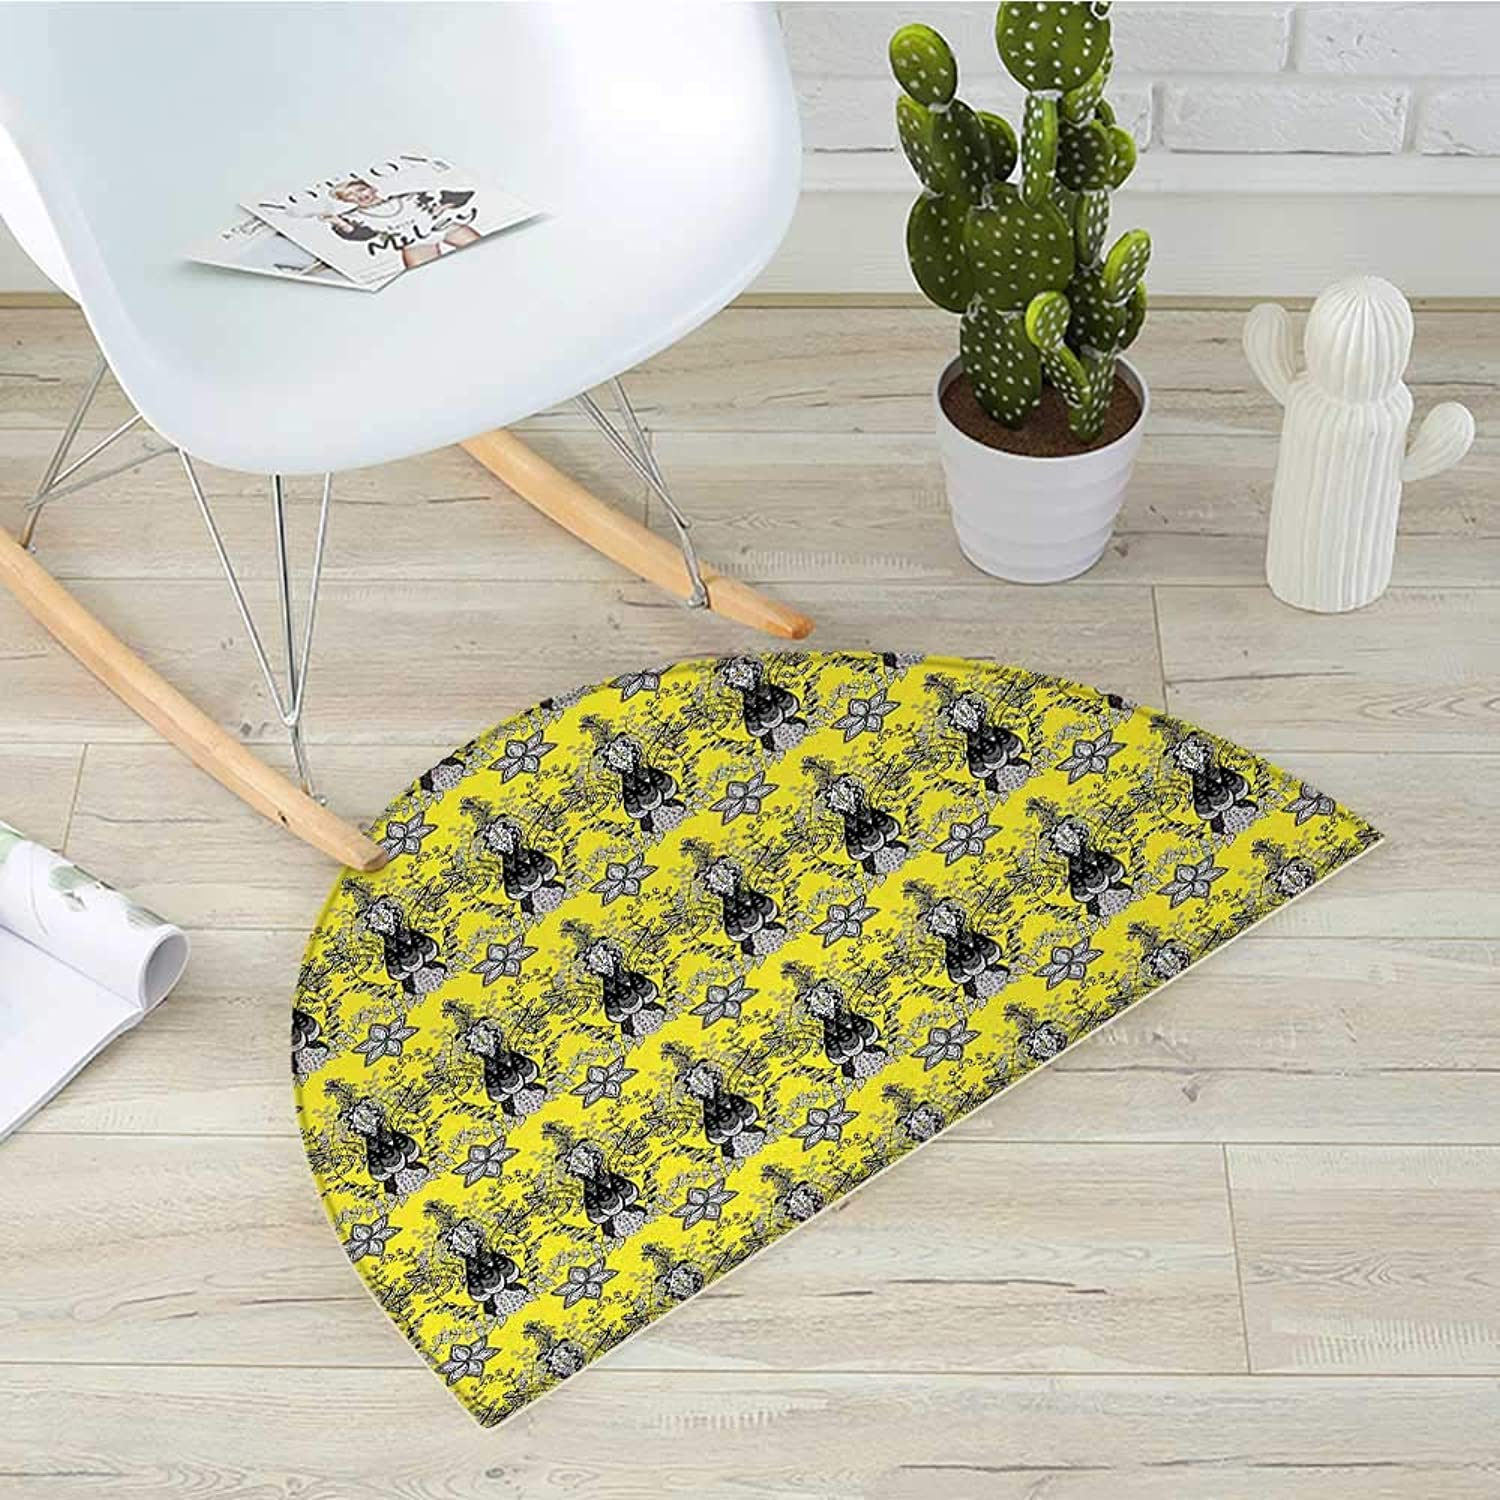 Grey and Yellow Semicircle Doormat Ethnic Orietal Paisley Floral Design Ivy Swilrs Image Halfmoon doormats H 39.3  xD 59  Black White and Charcoal Grey